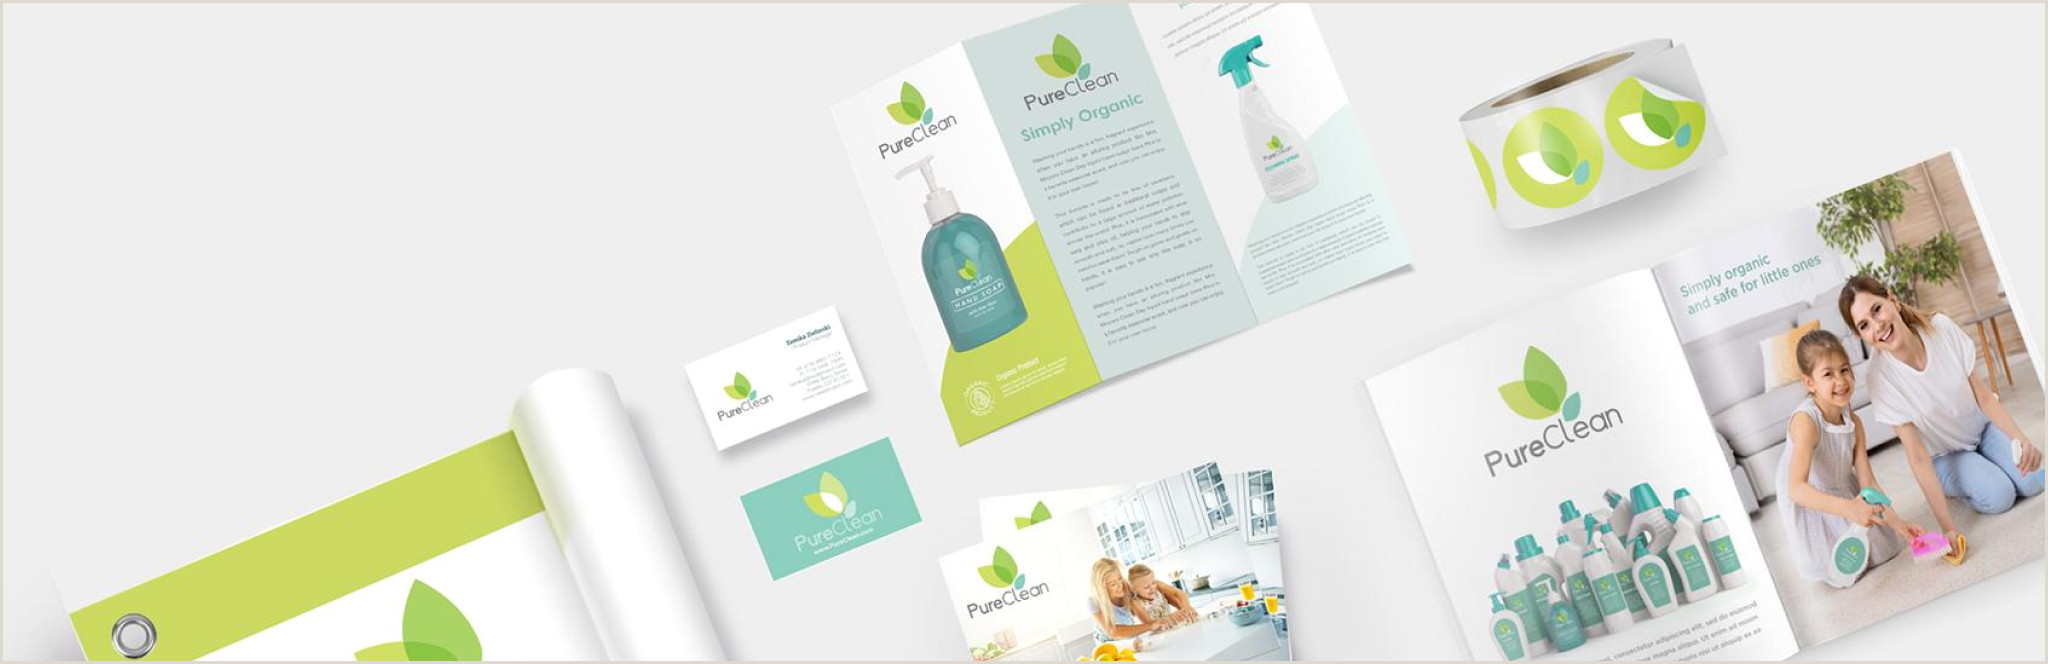 Best Business Cards Options Printplace High Quality Line Printing Services